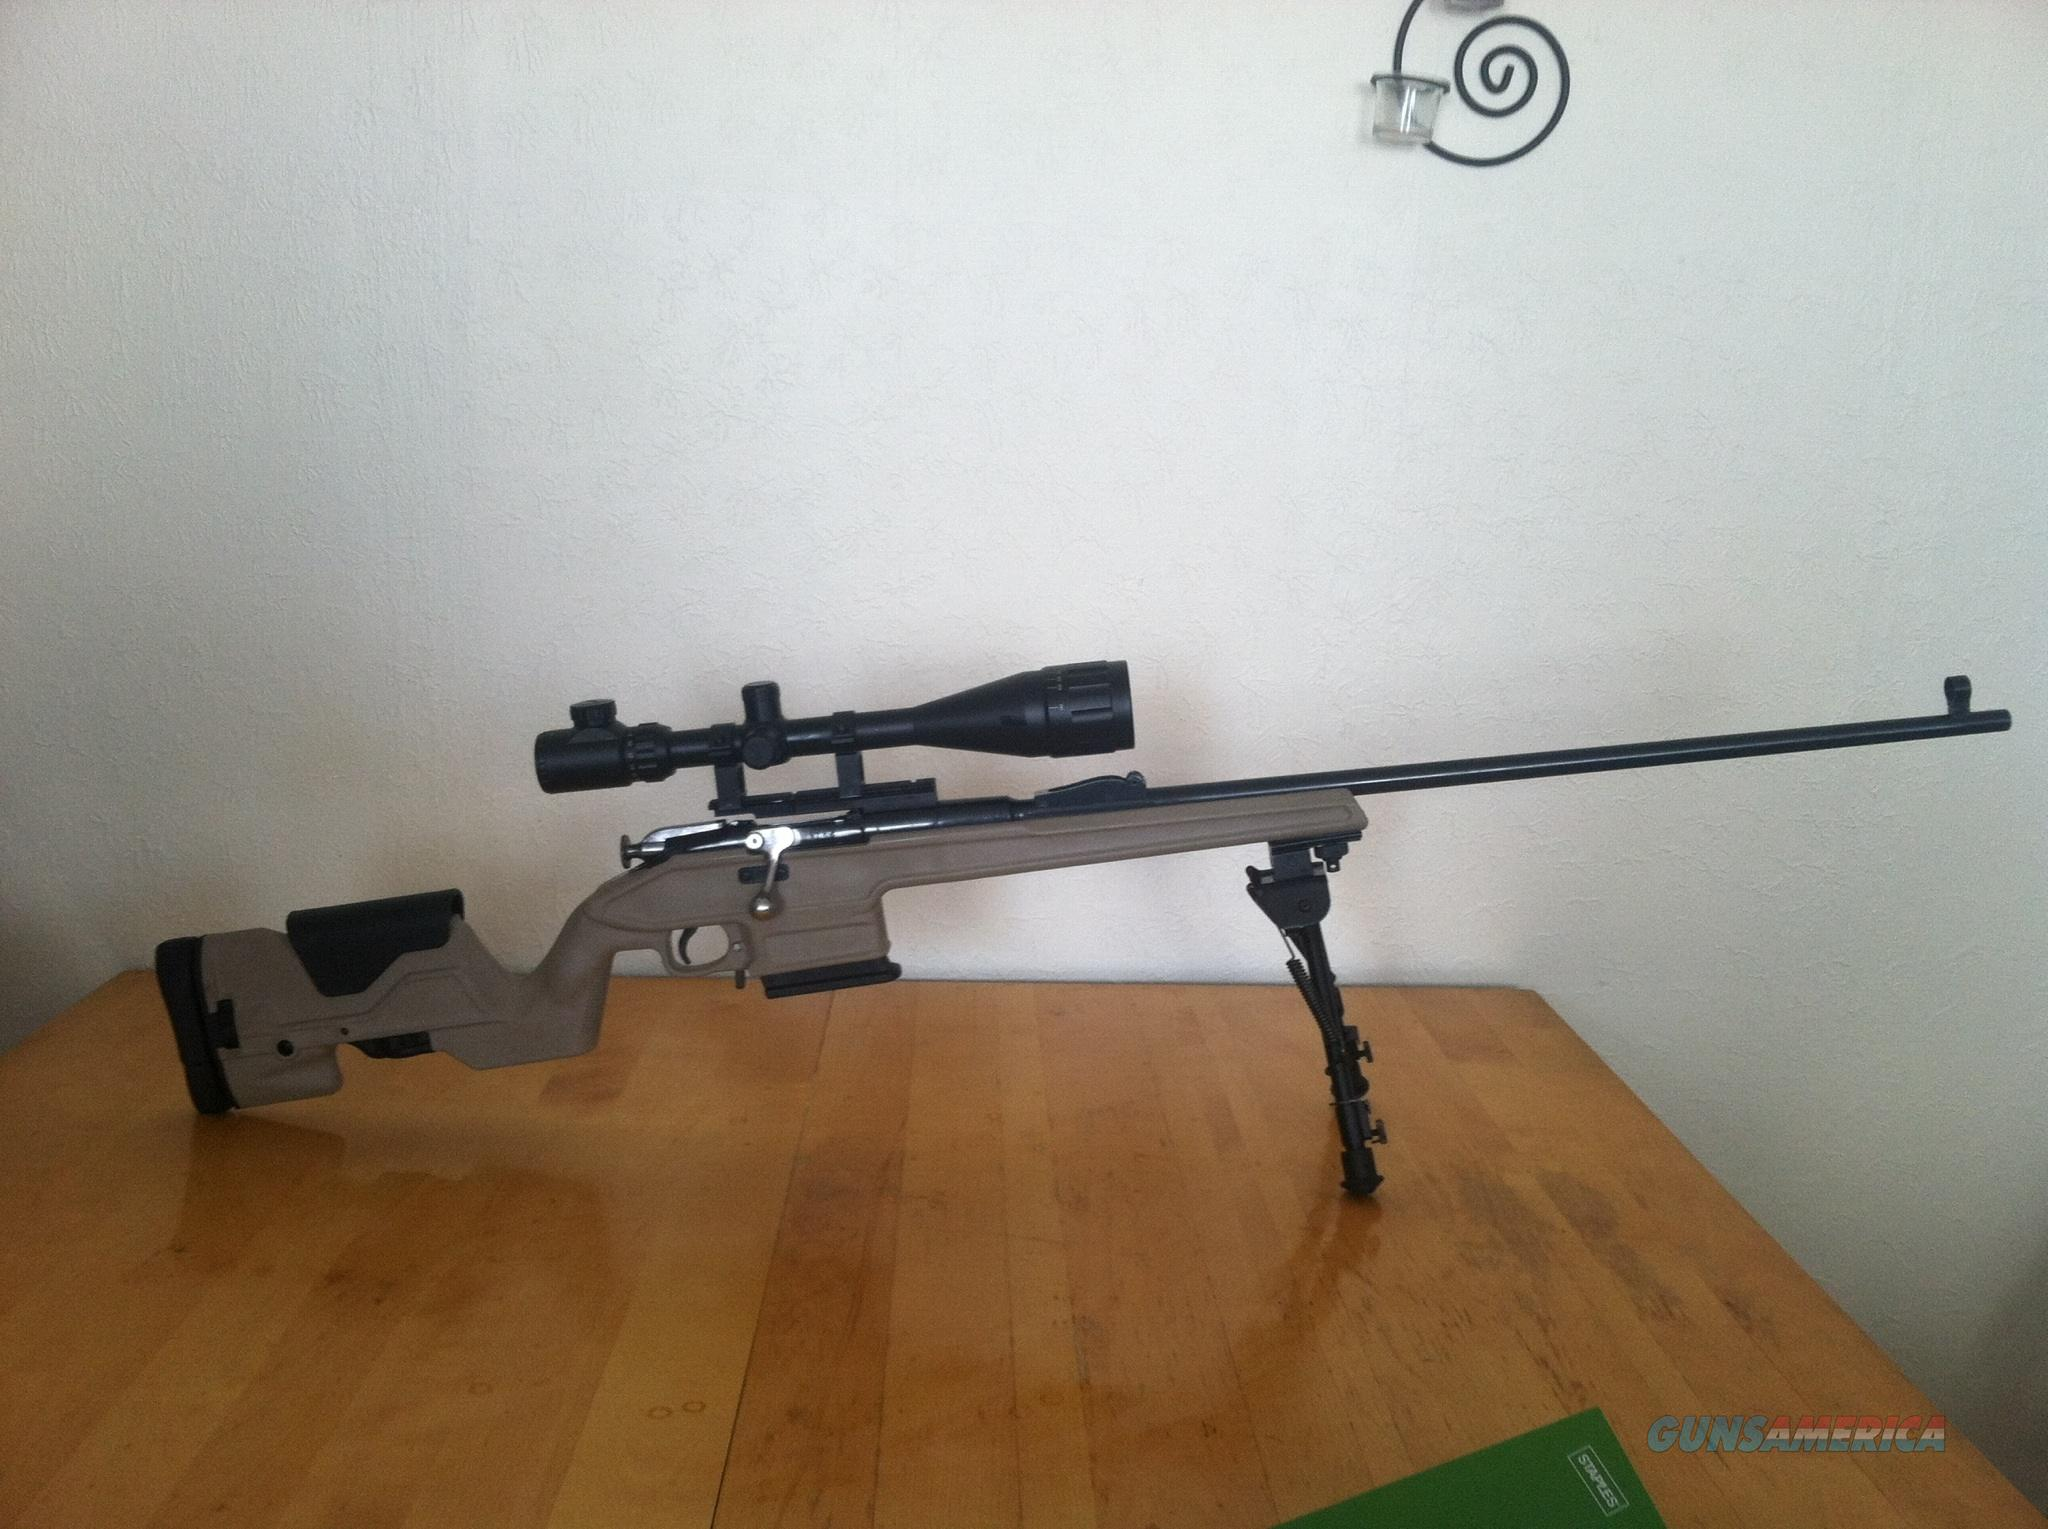 7.62 x 54r Mosin Nagant Custom Sniper Rifle for sale